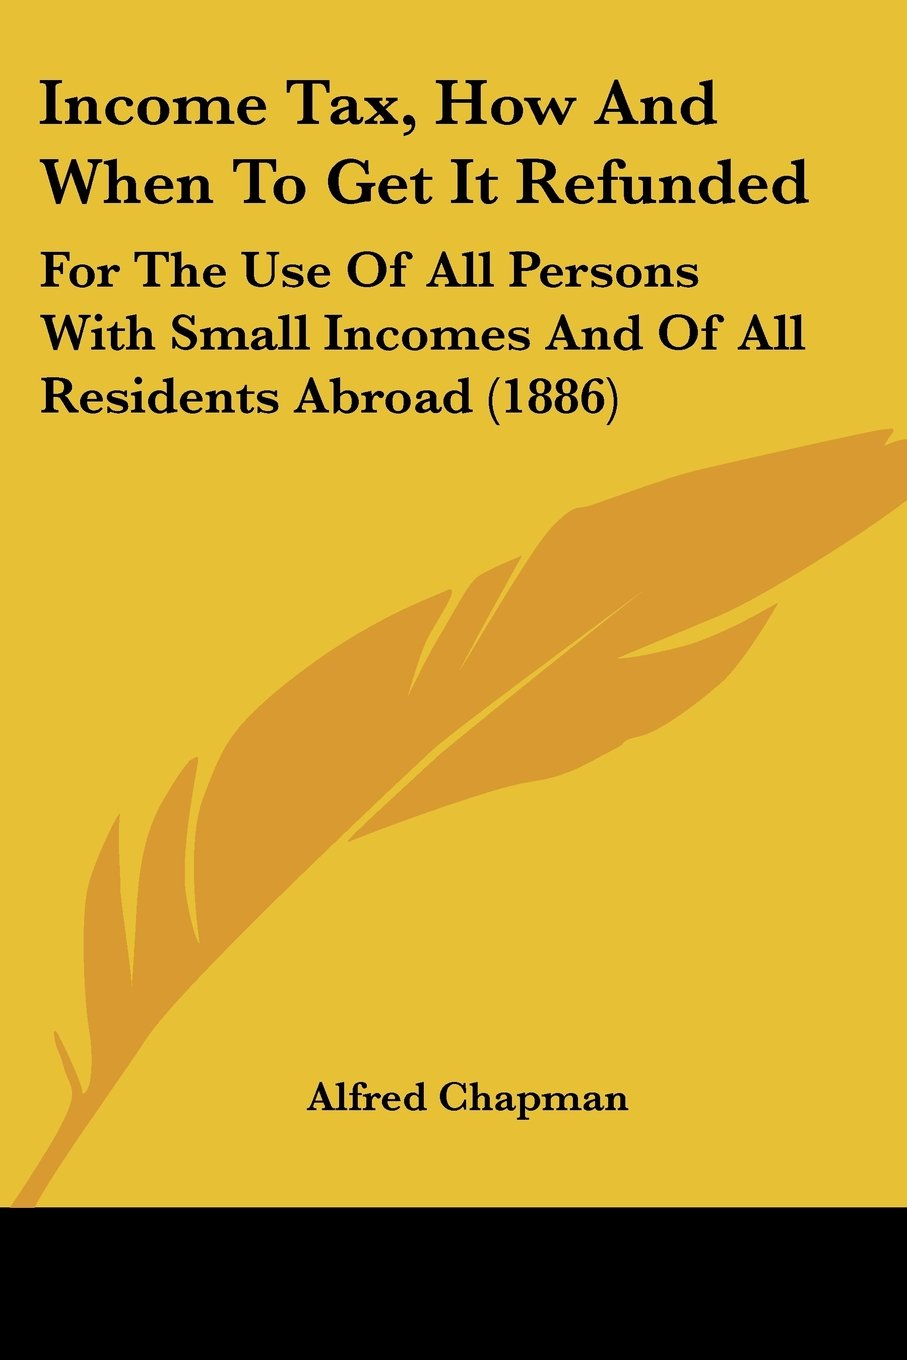 Download Income Tax, How And When To Get It Refunded: For The Use Of All Persons With Small Incomes And Of All Residents Abroad (1886) ebook